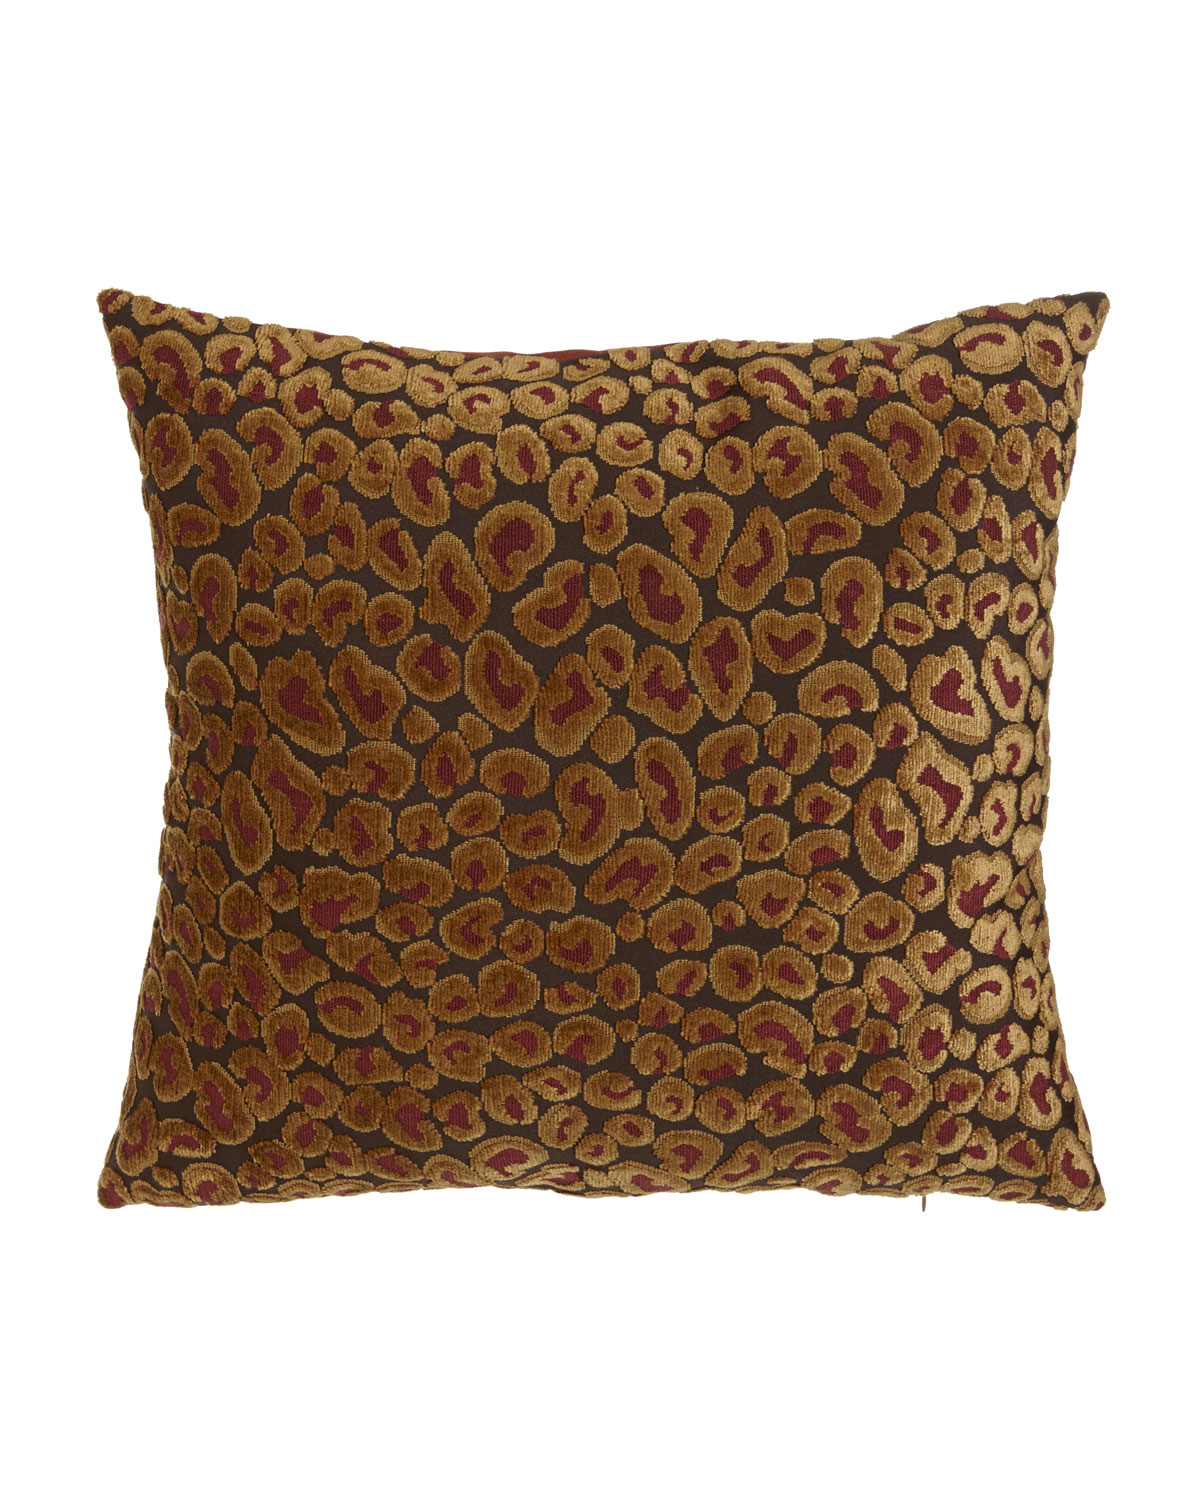 D.V. Kap Home Loren Cheetah Pillow